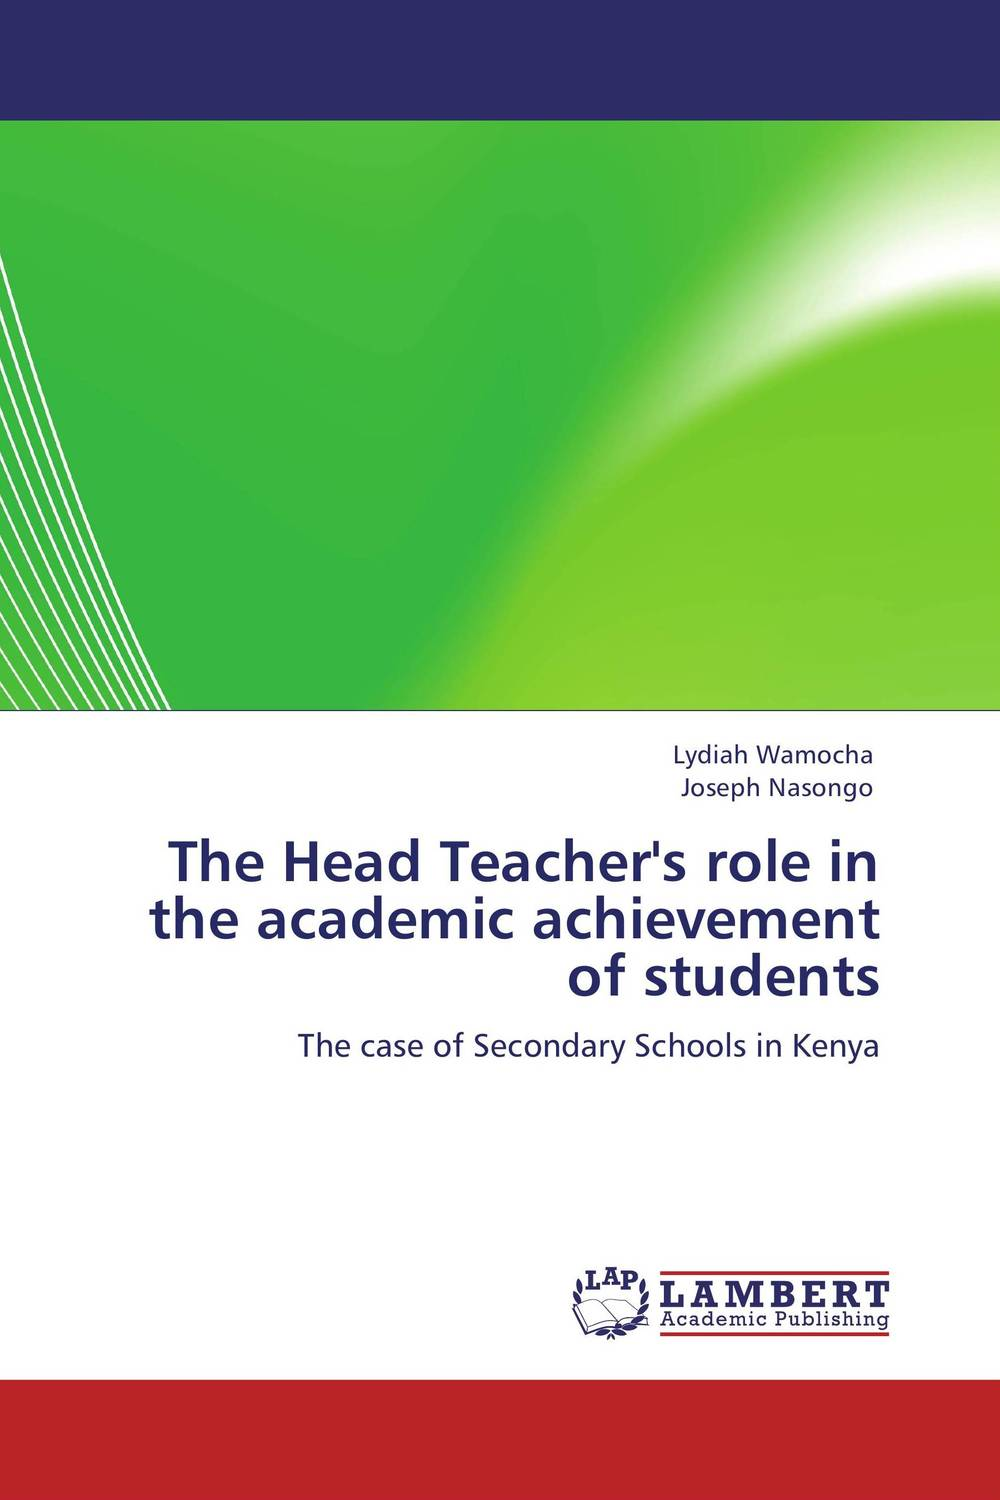 The Head Teacher's role in the academic achievement of students